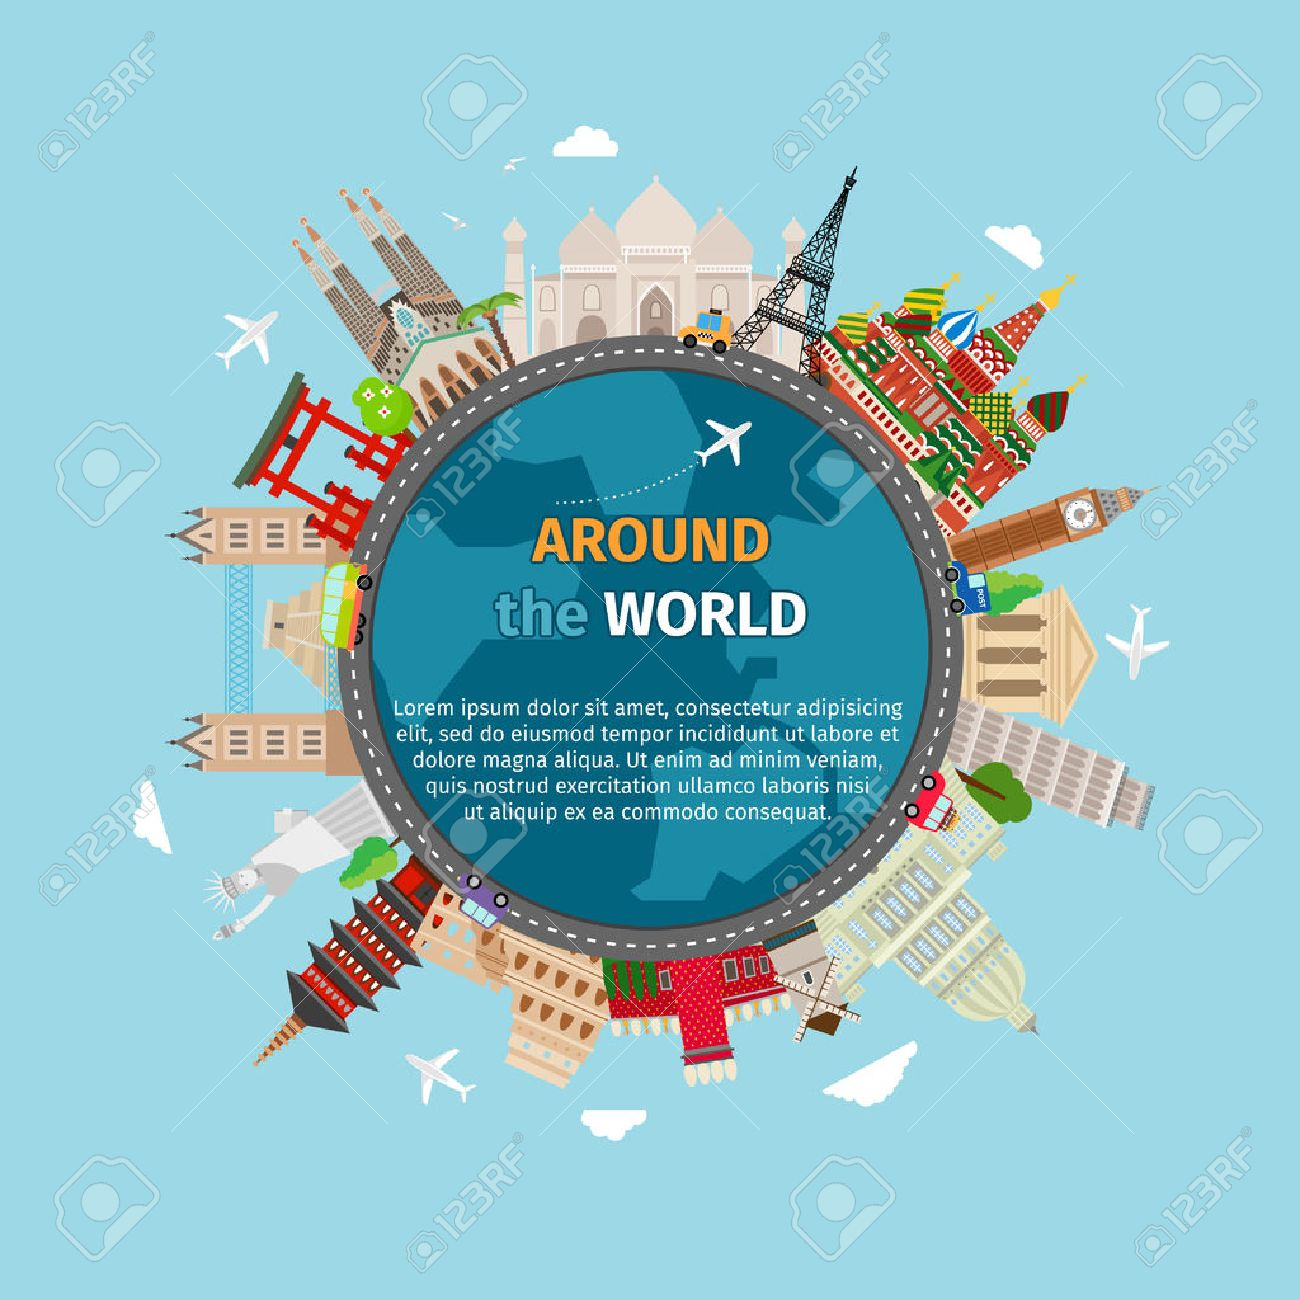 Travel around the world postcard. Tourism and vacation, earth world, journey global, vector illustration Stock Vector - 42795154